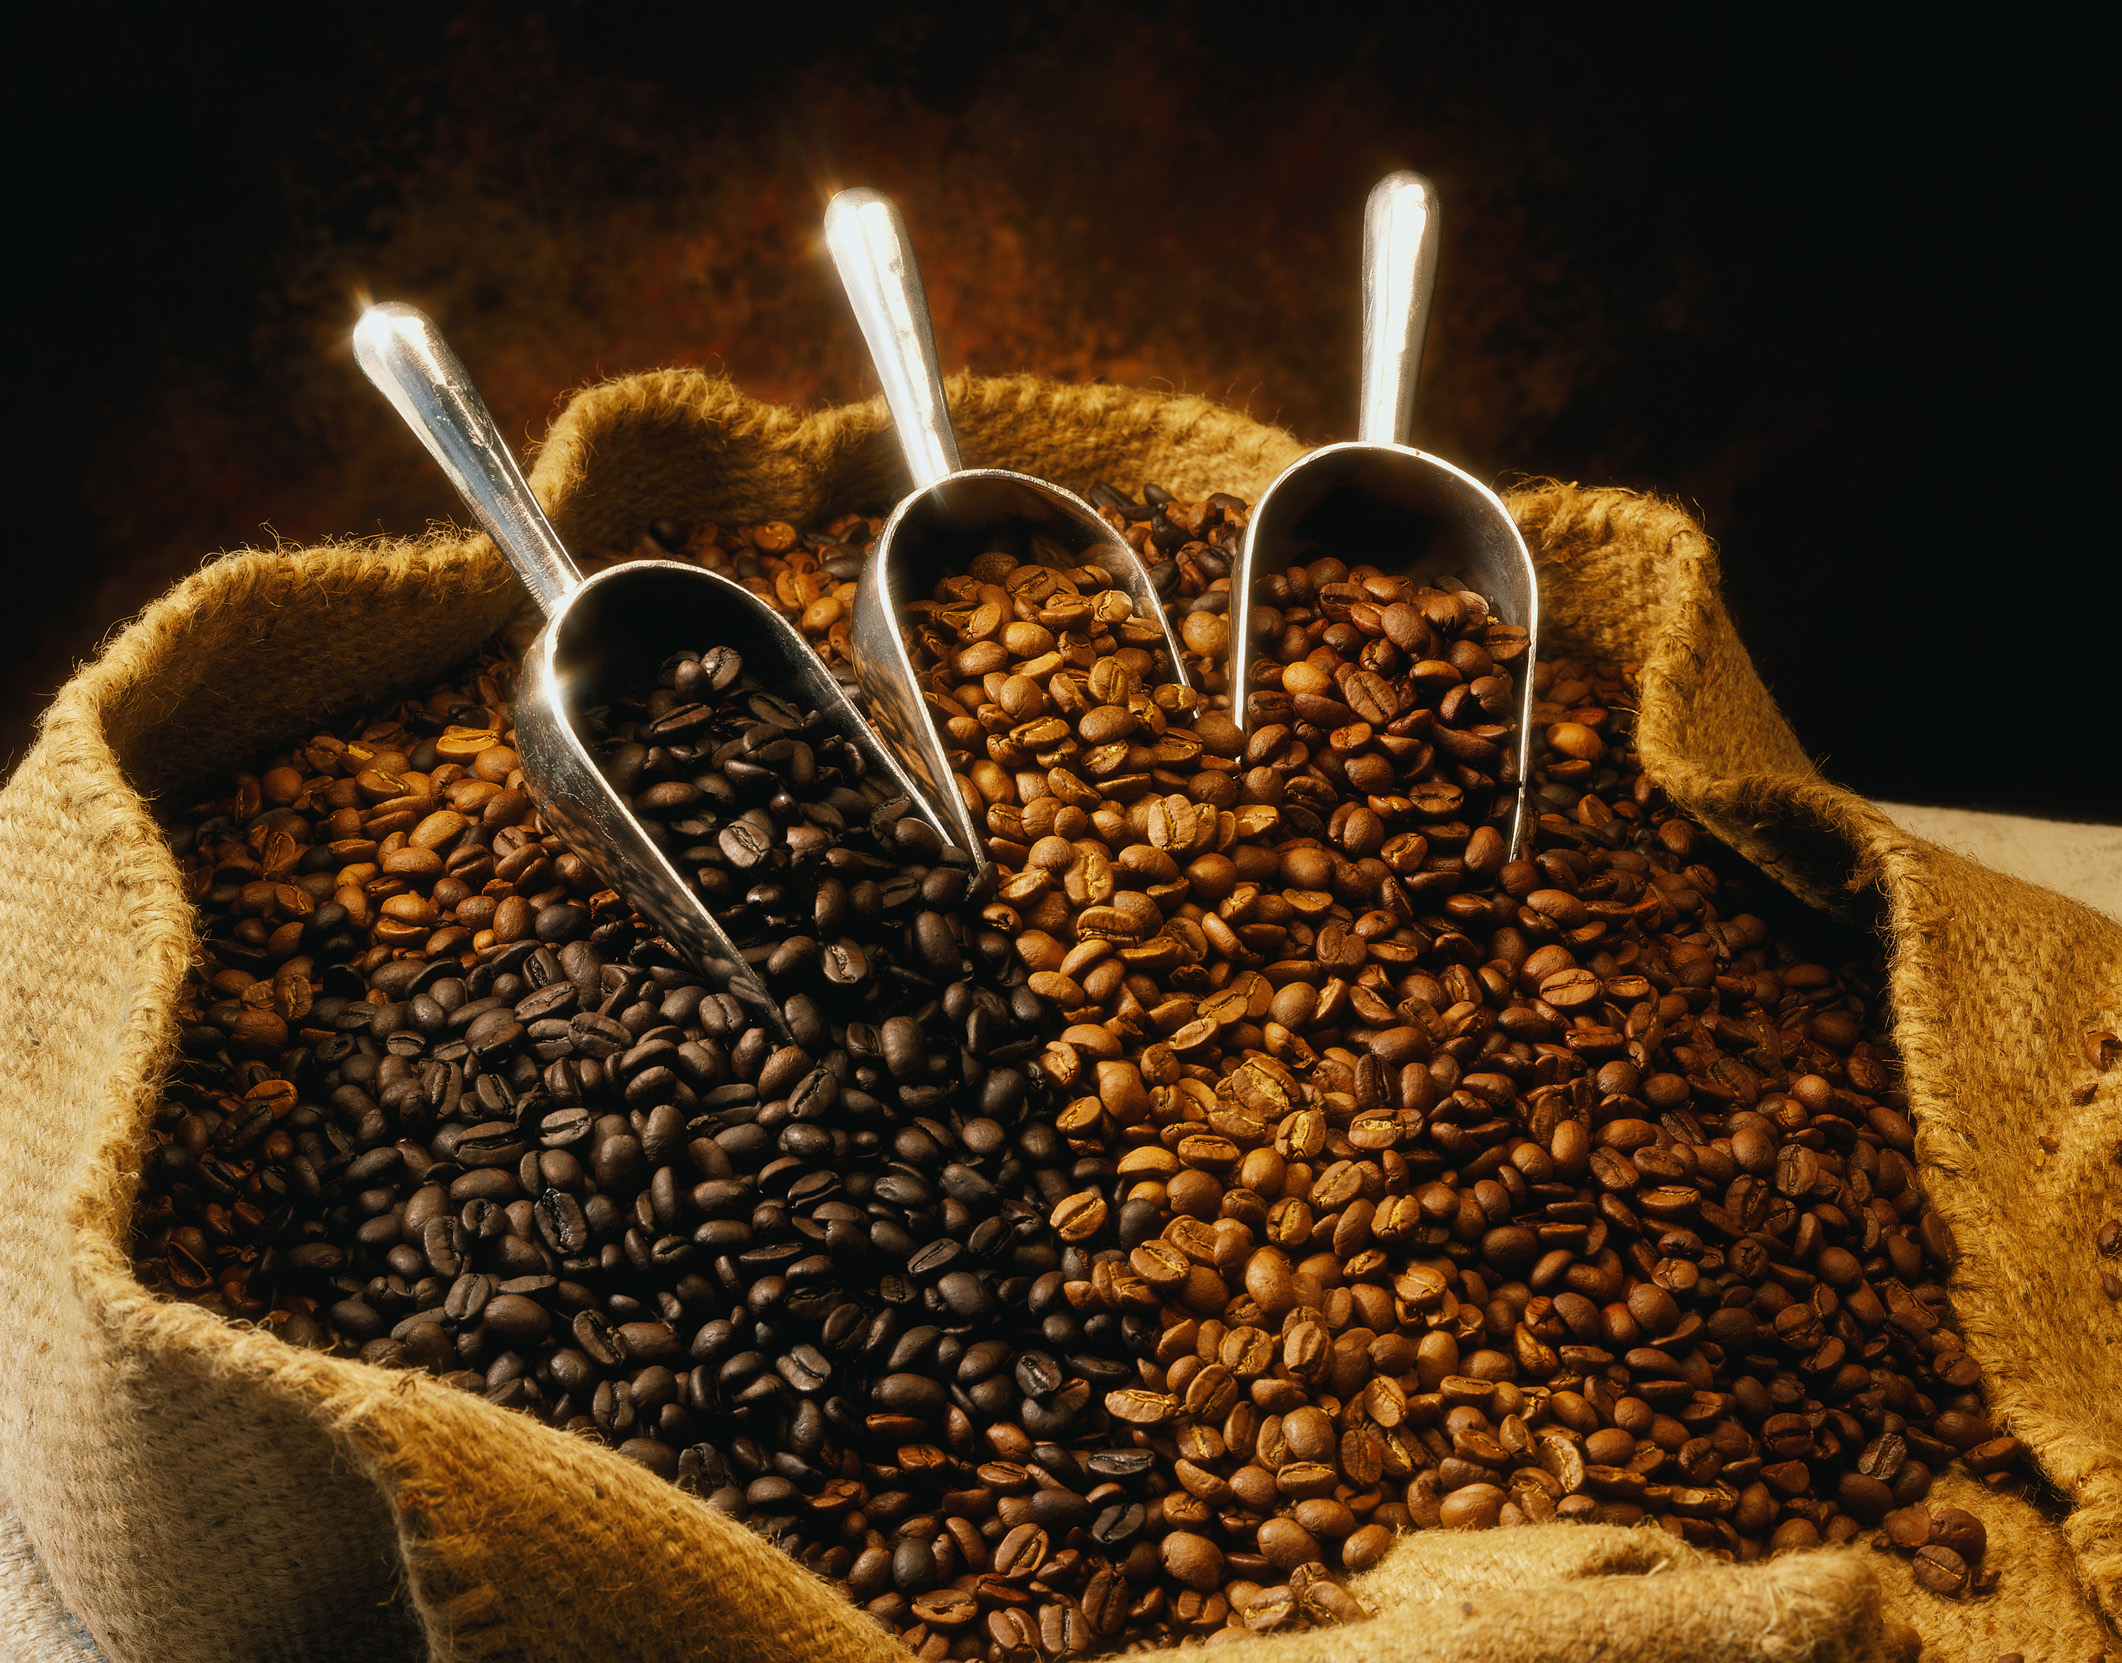 10 Things You Didn't Know About Coffee